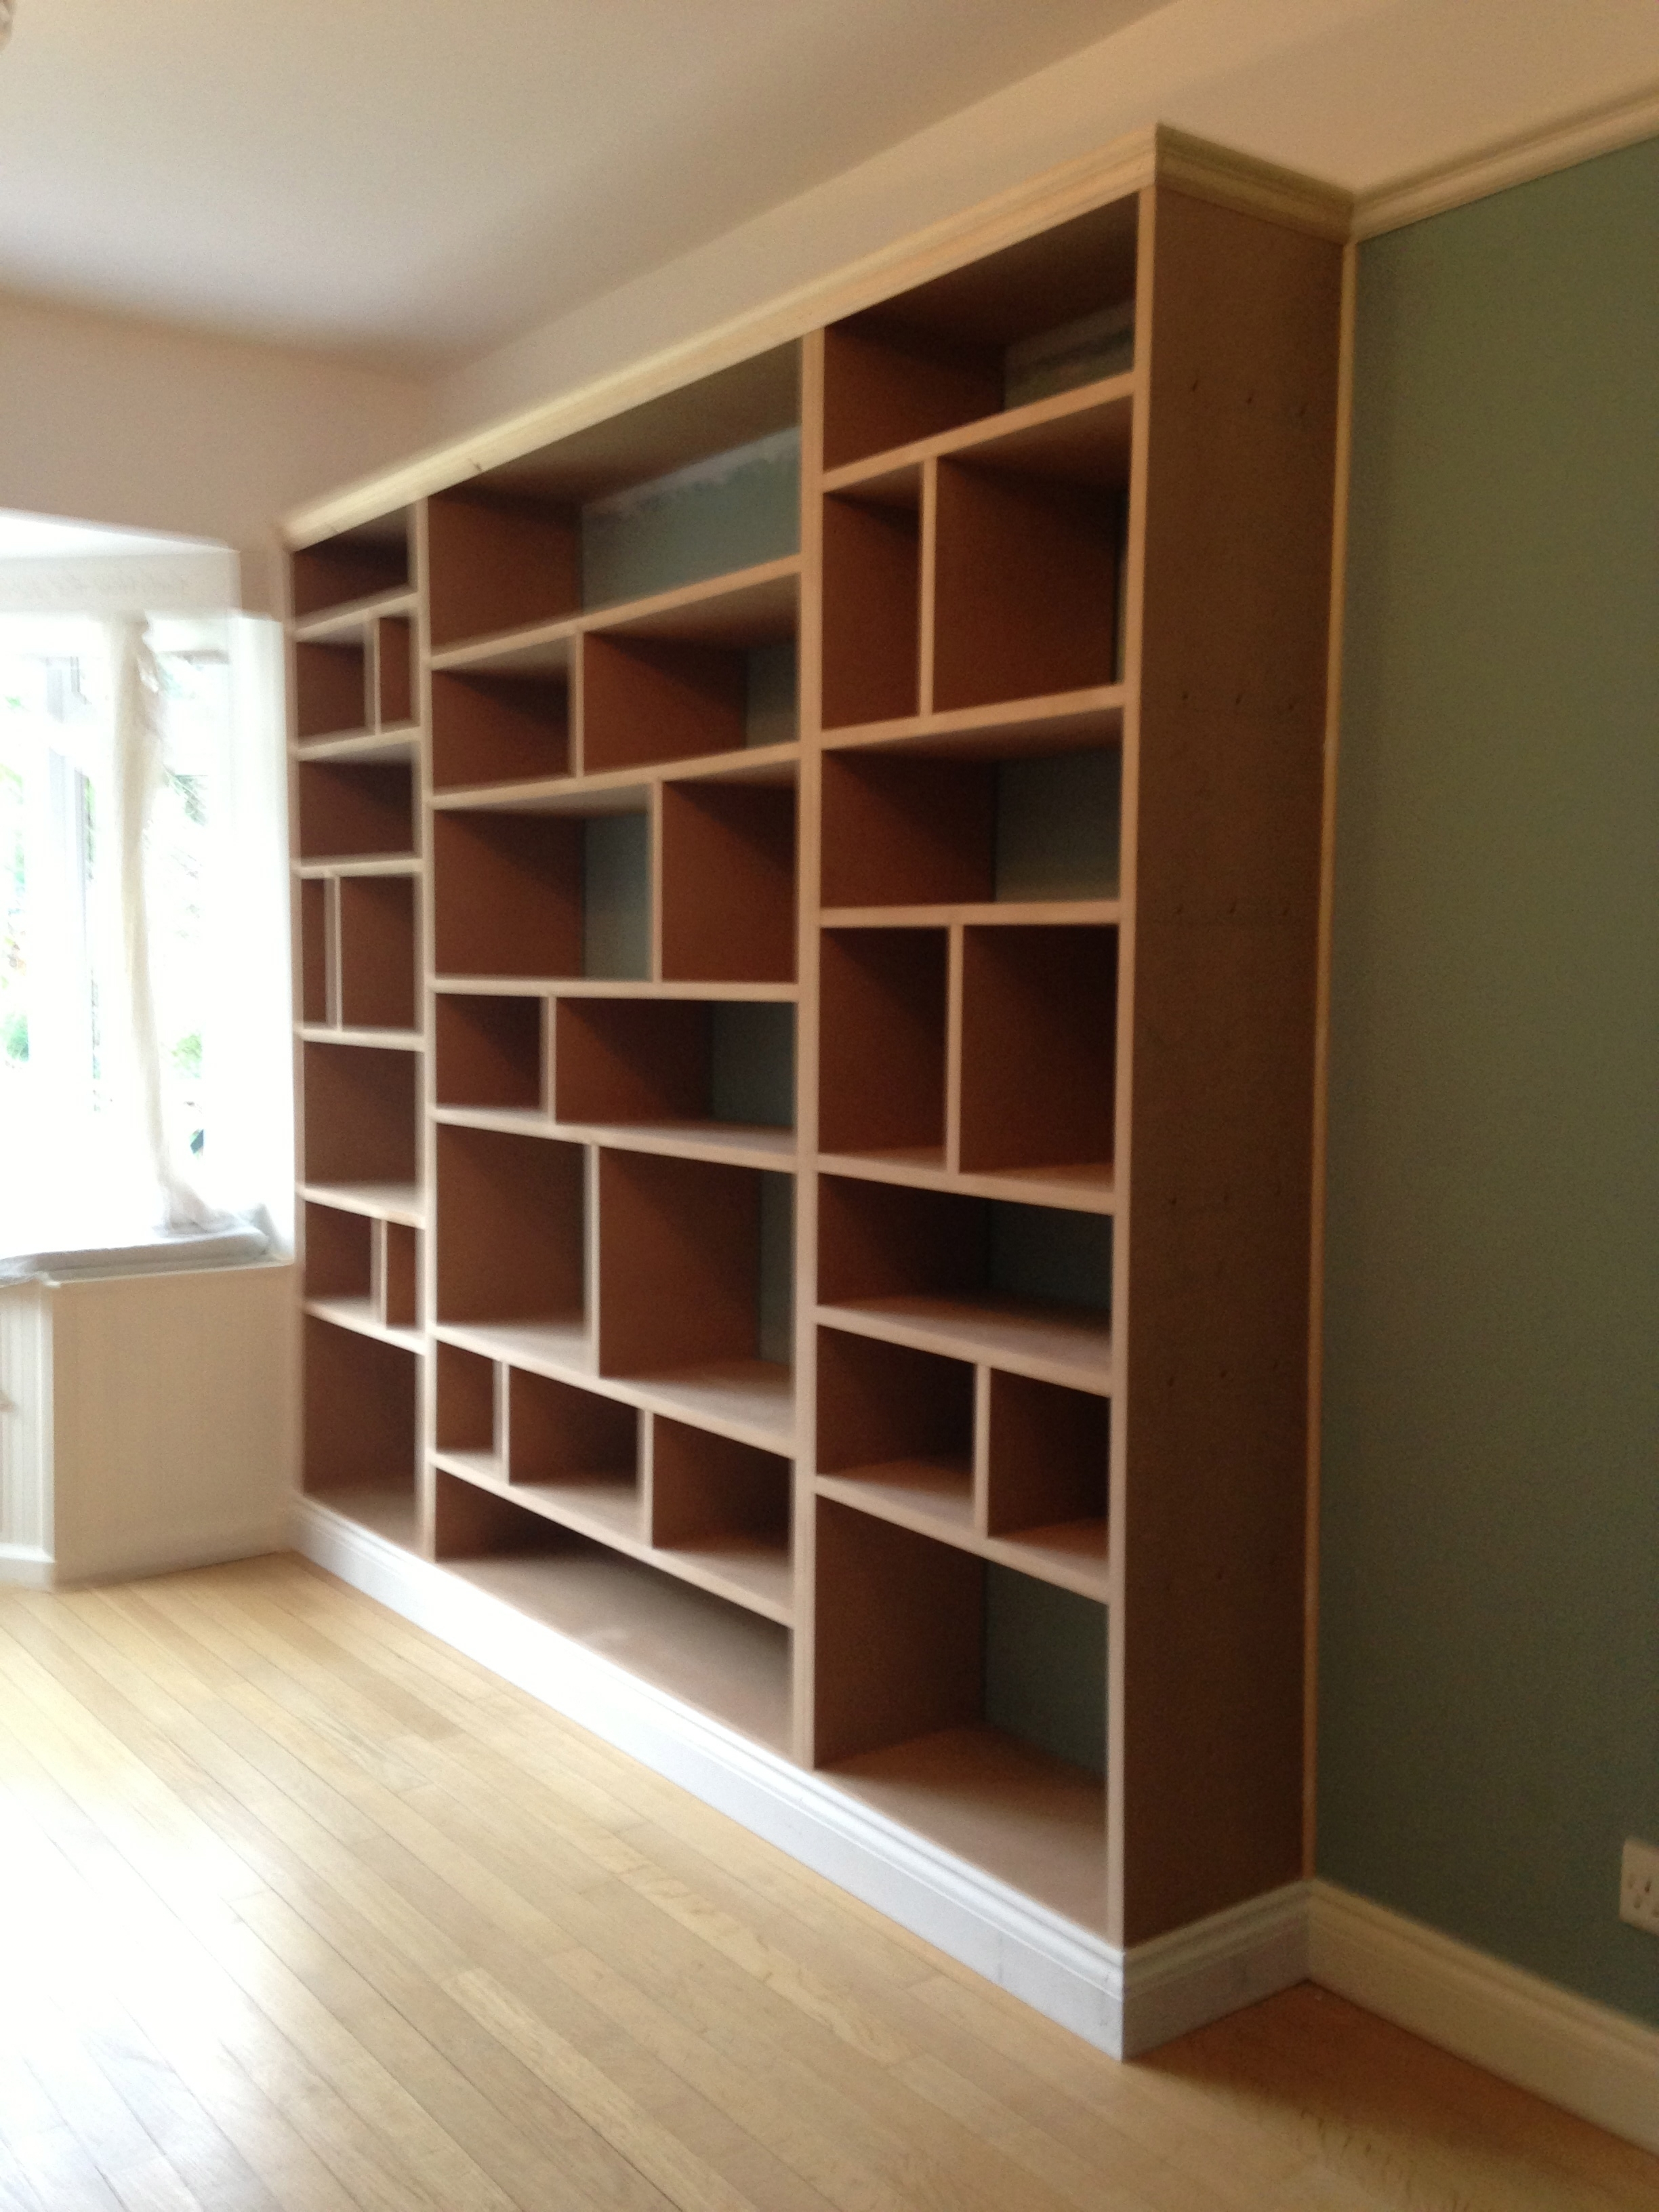 Fitted Shelving, Cupboards And Flooring – P D Carpentry & Building Throughout Most Recent Built In Cupboard Shelving (View 7 of 15)